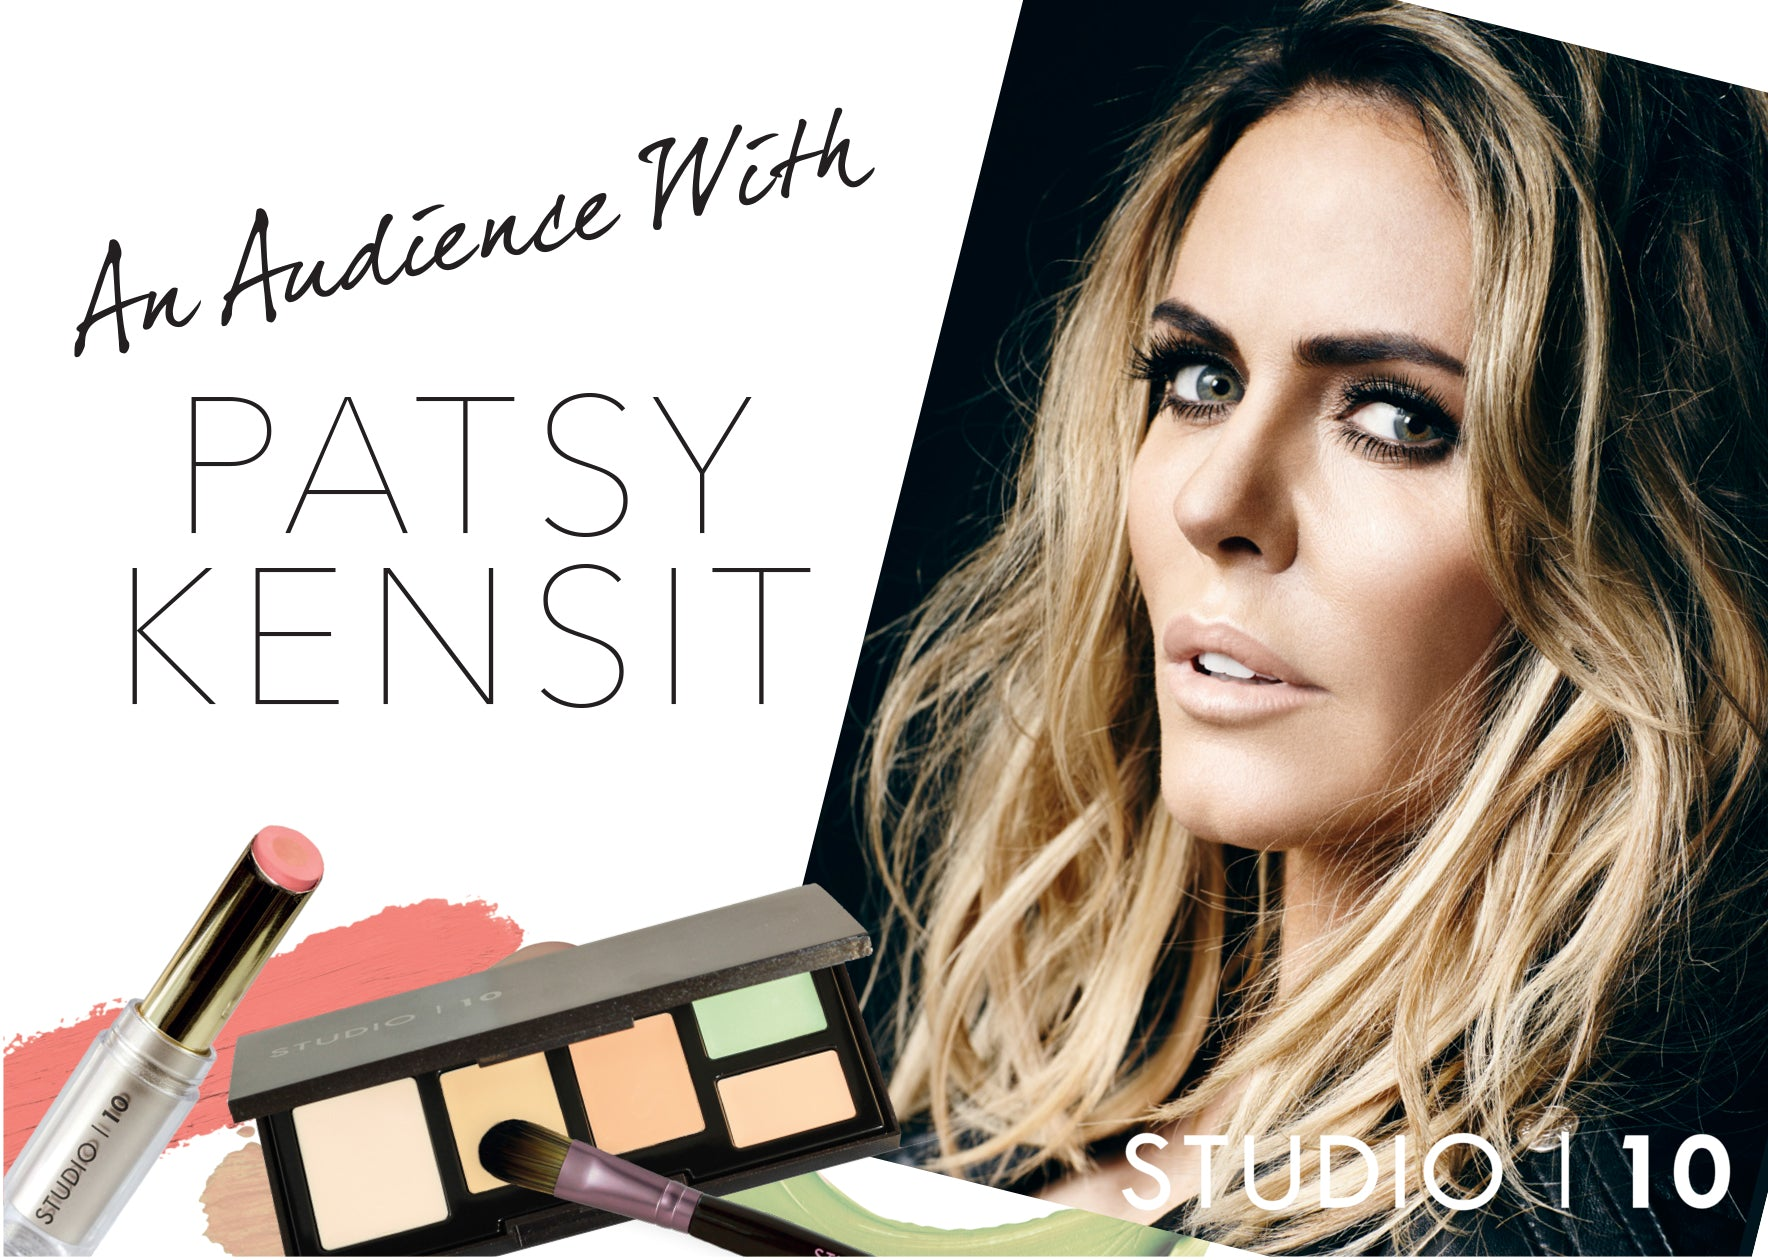 Patsy Kensit Marks and Spencers Tour